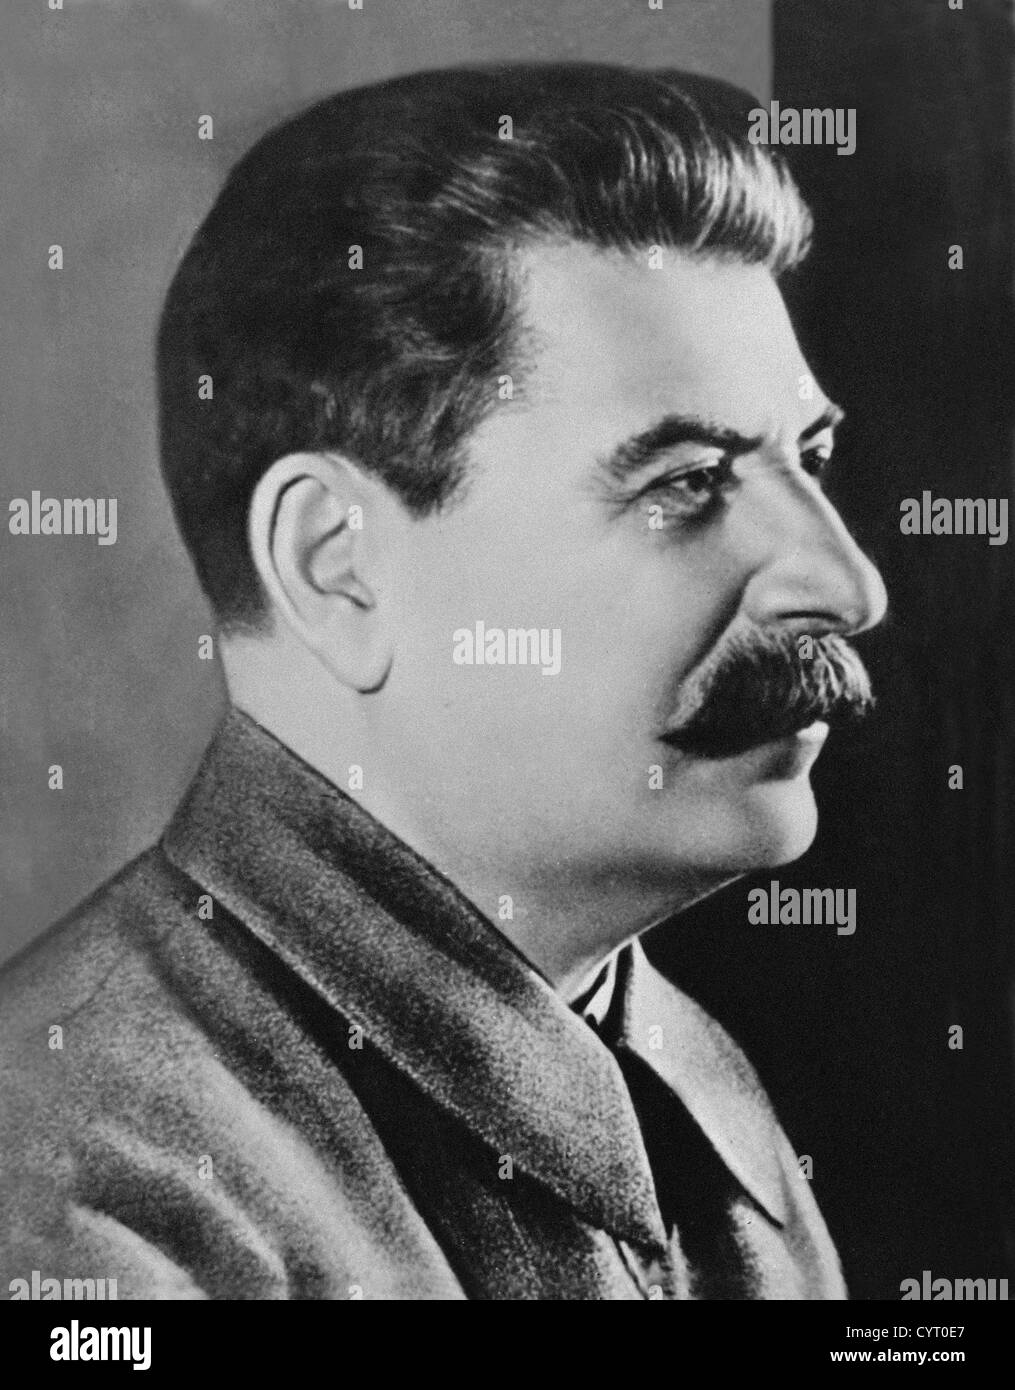 Joseph Vissarionovich Stalin was the Premier of the Soviet Union from 6 May 1941 until his death in 5 March 1953. - Stock Image